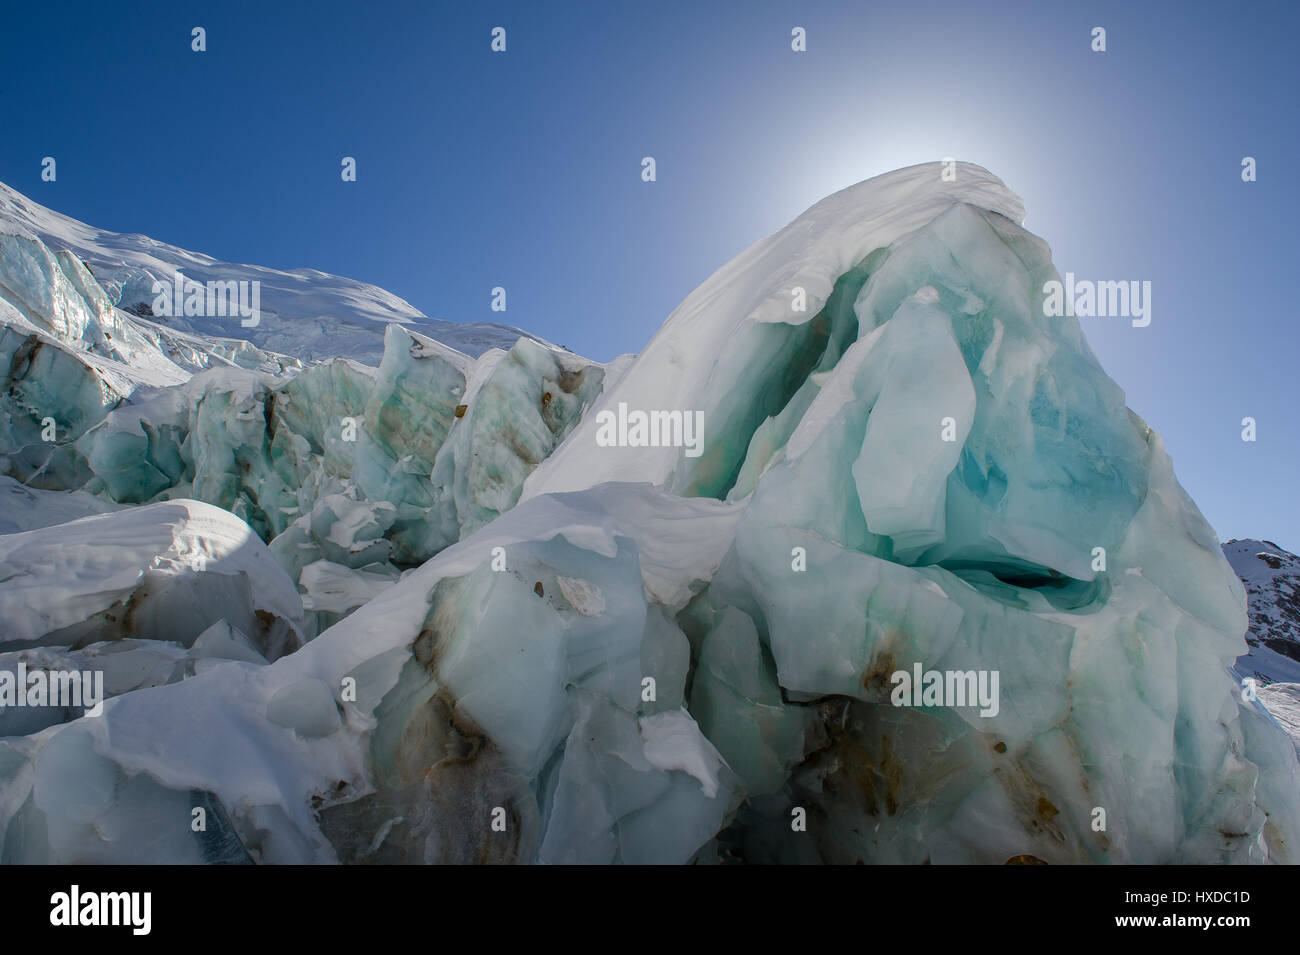 Ice block of an glacier in the alps - Stock Image